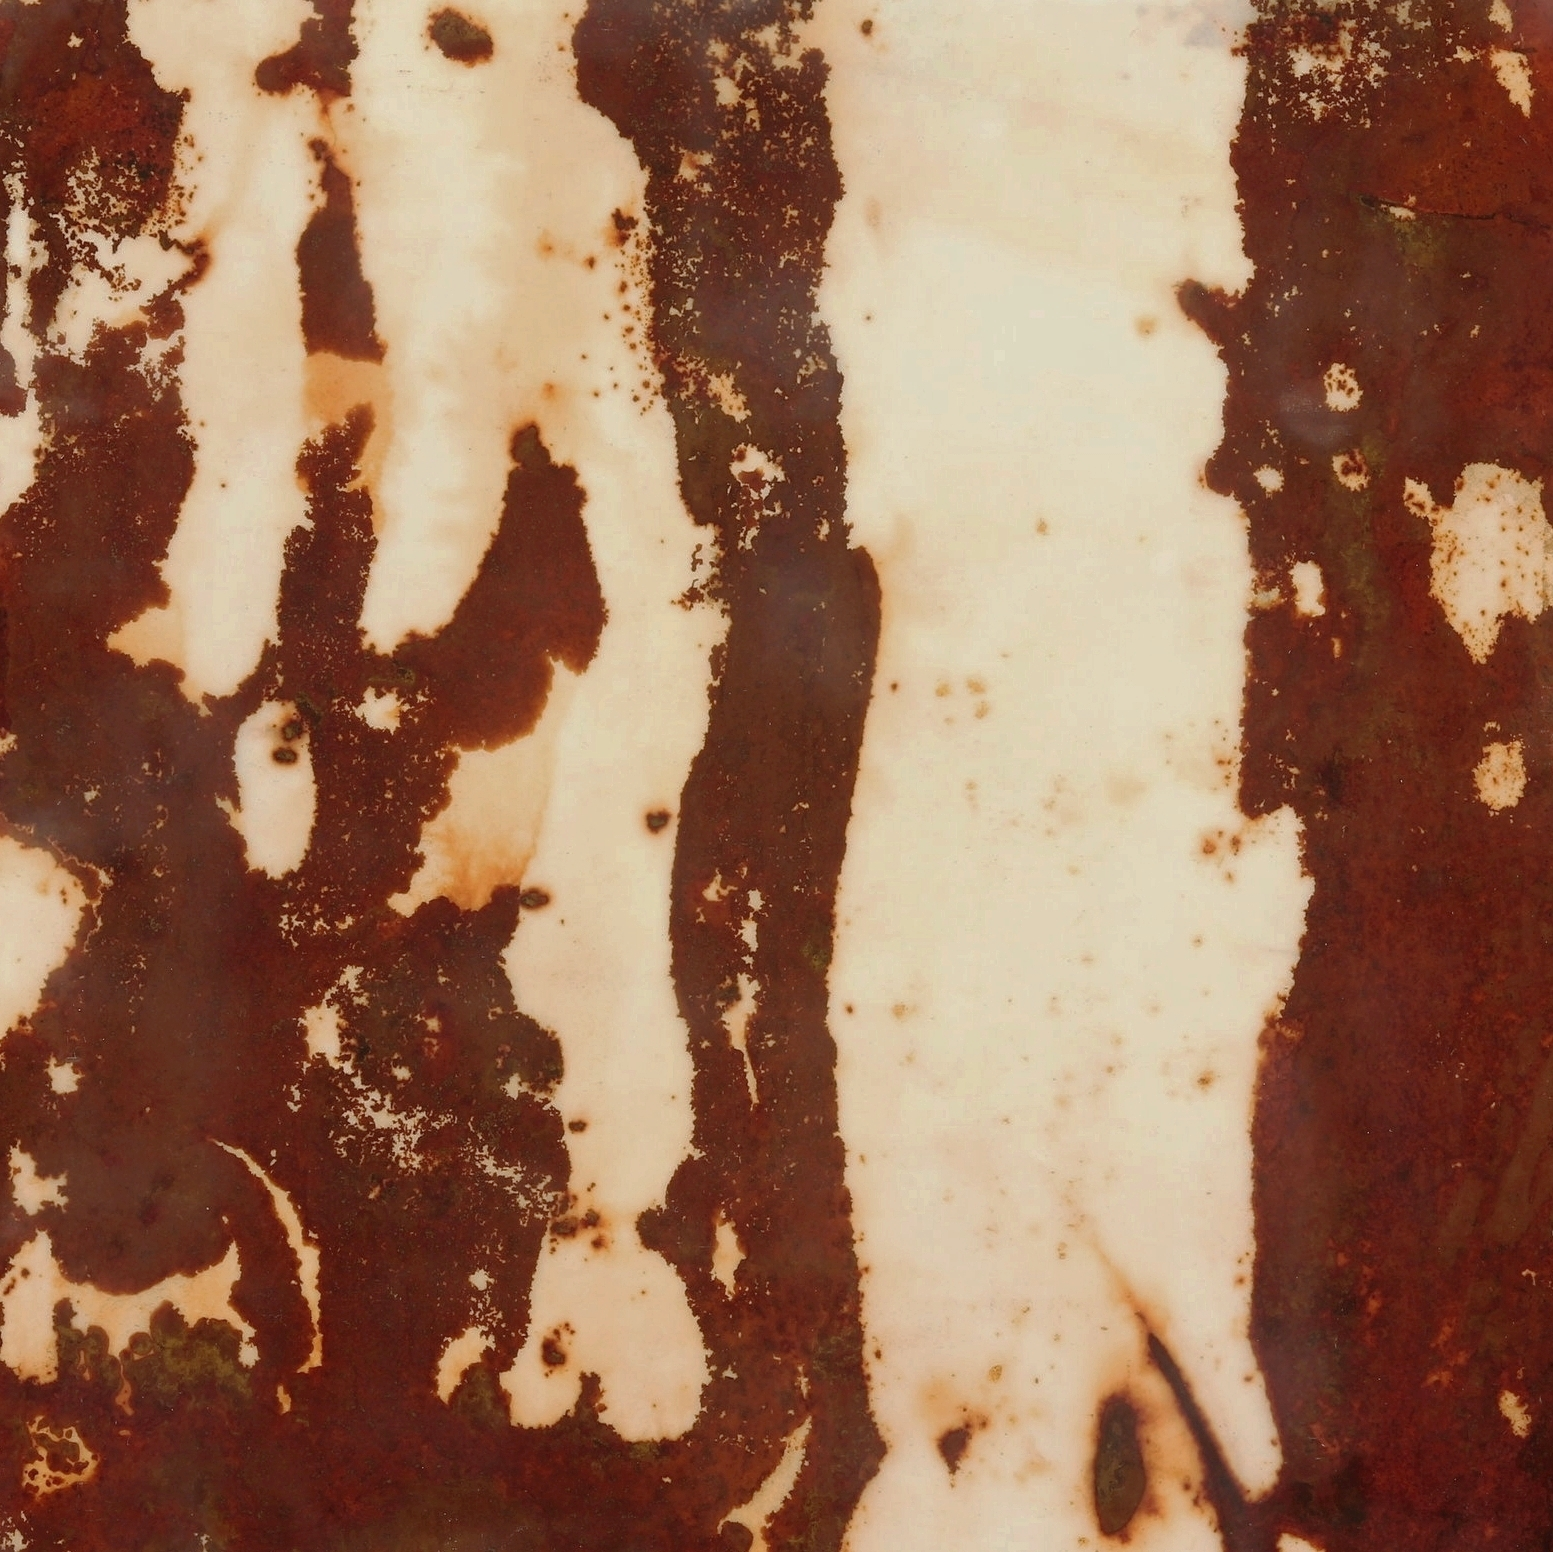 Rust #27, 2013, Rust, encaustic on paper on panel, 12 x 12""